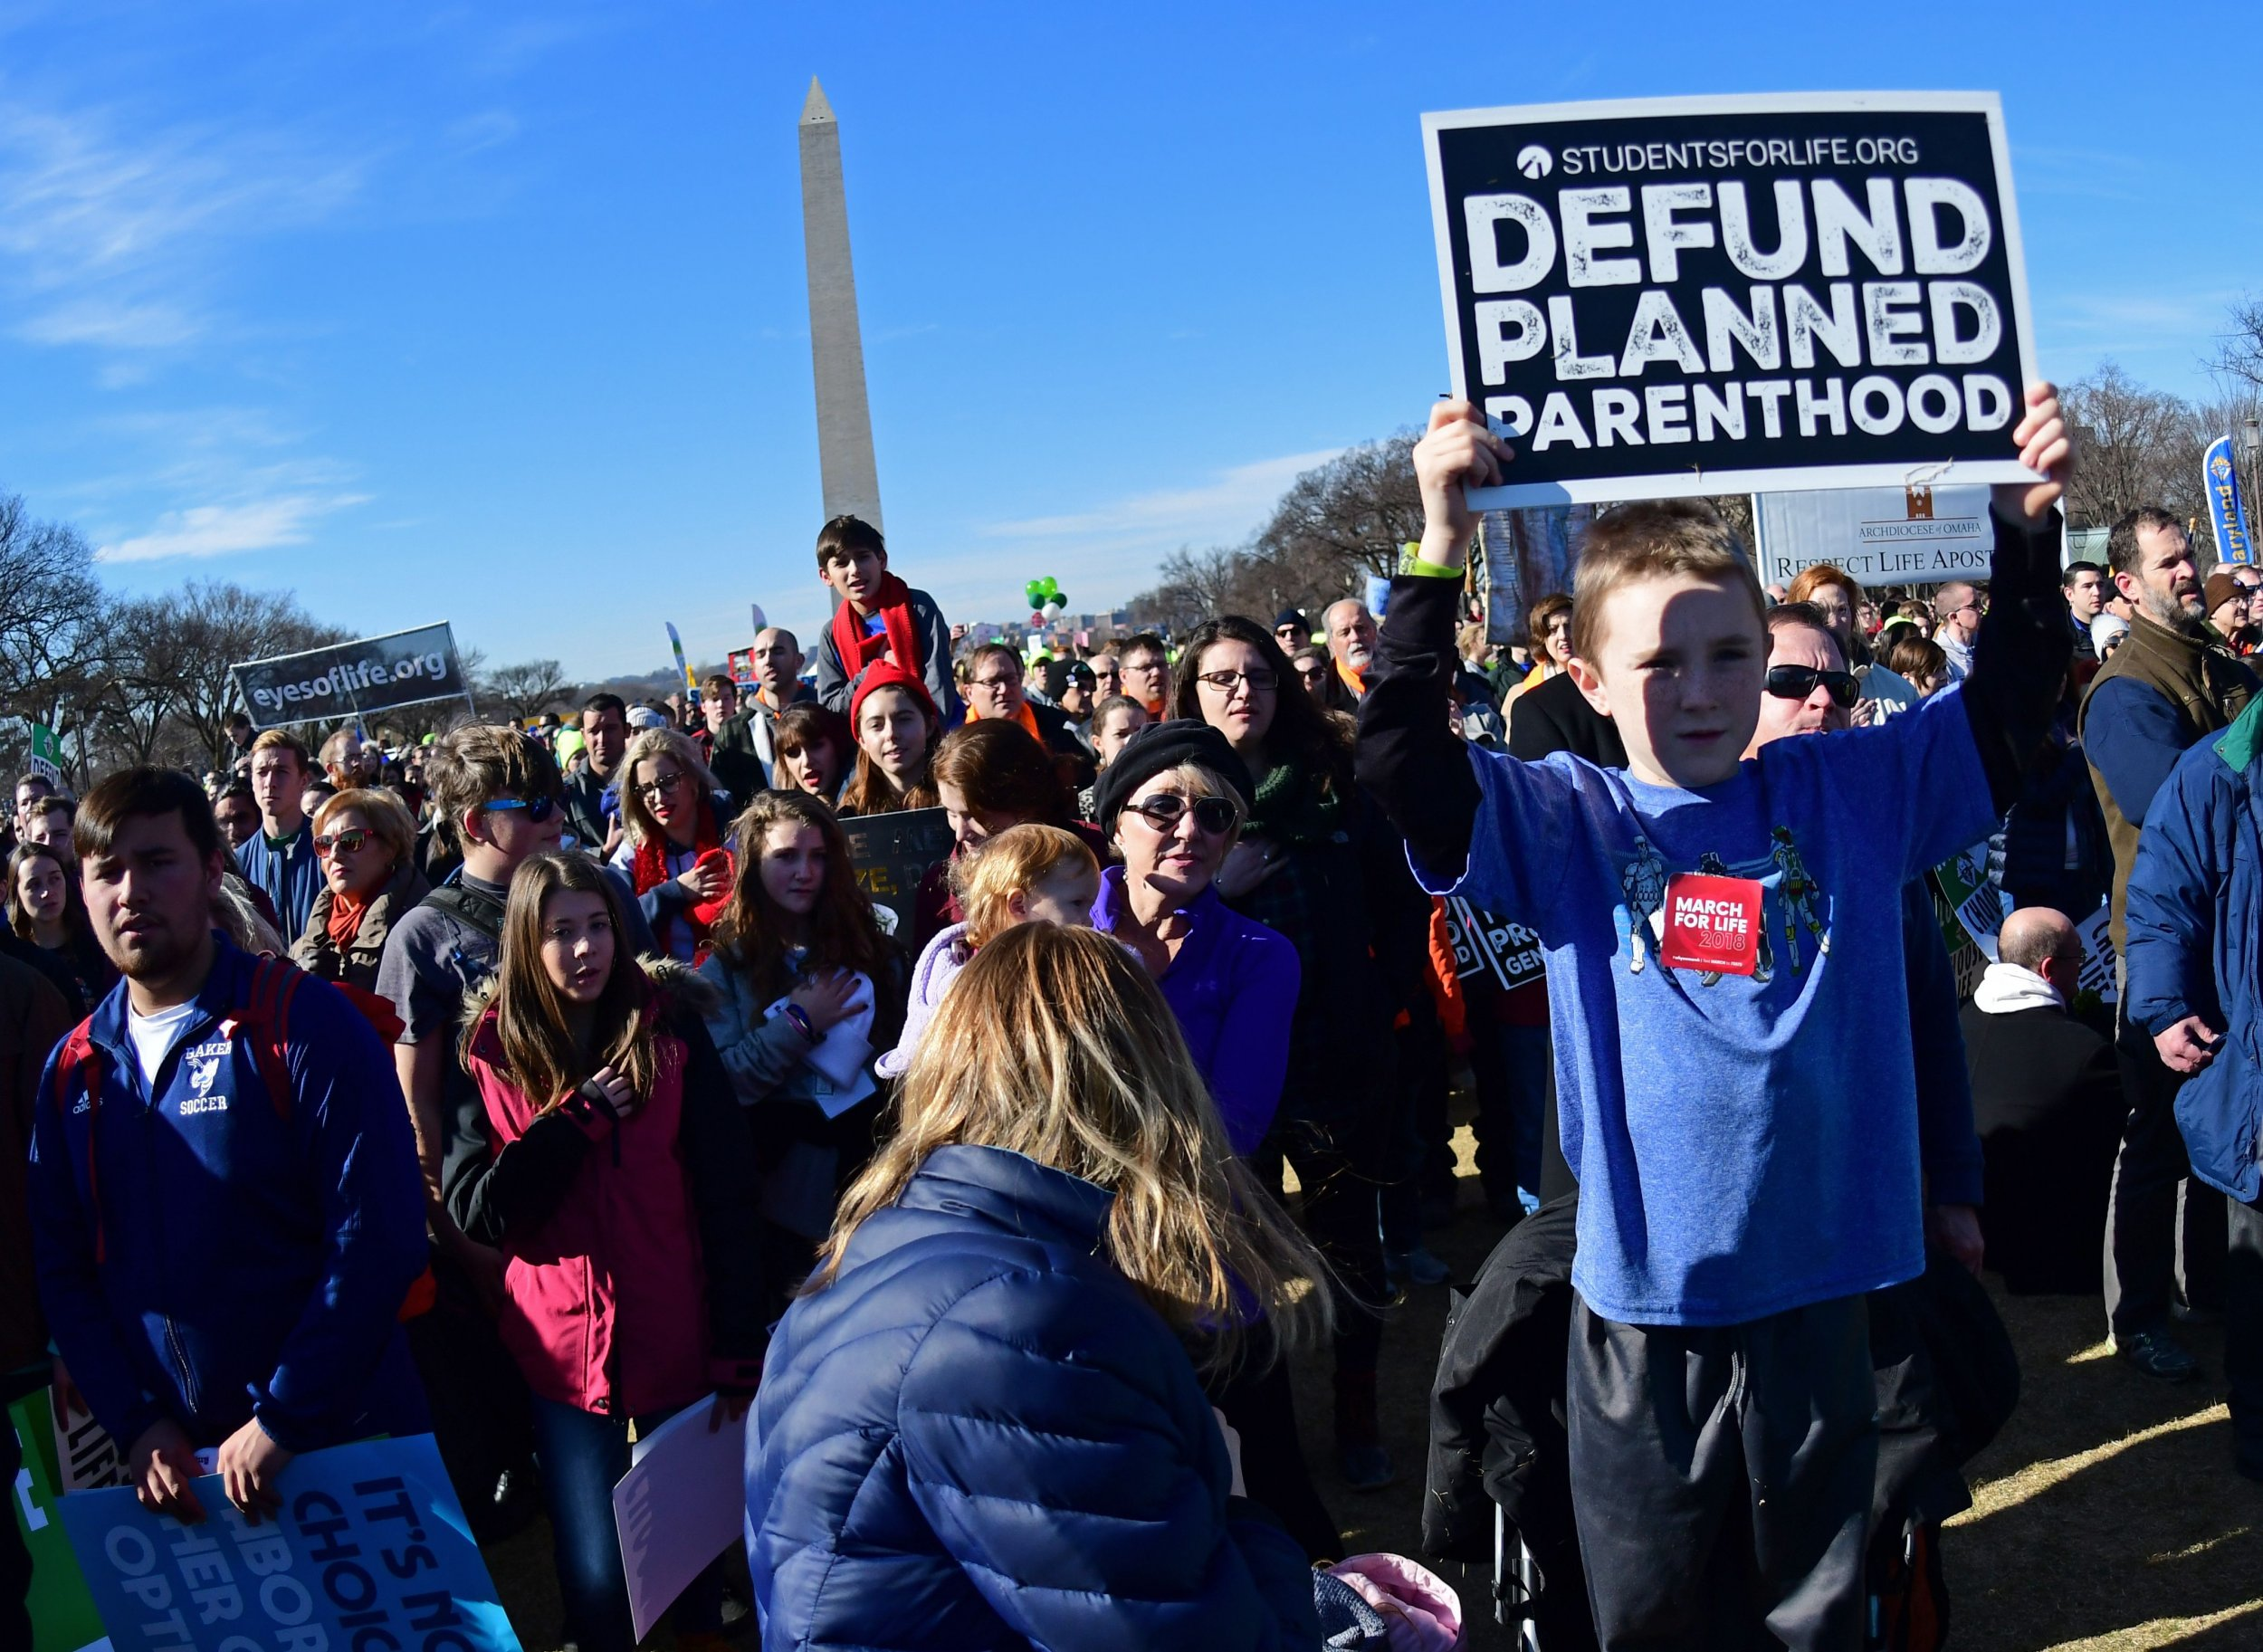 anti-abortion march for life